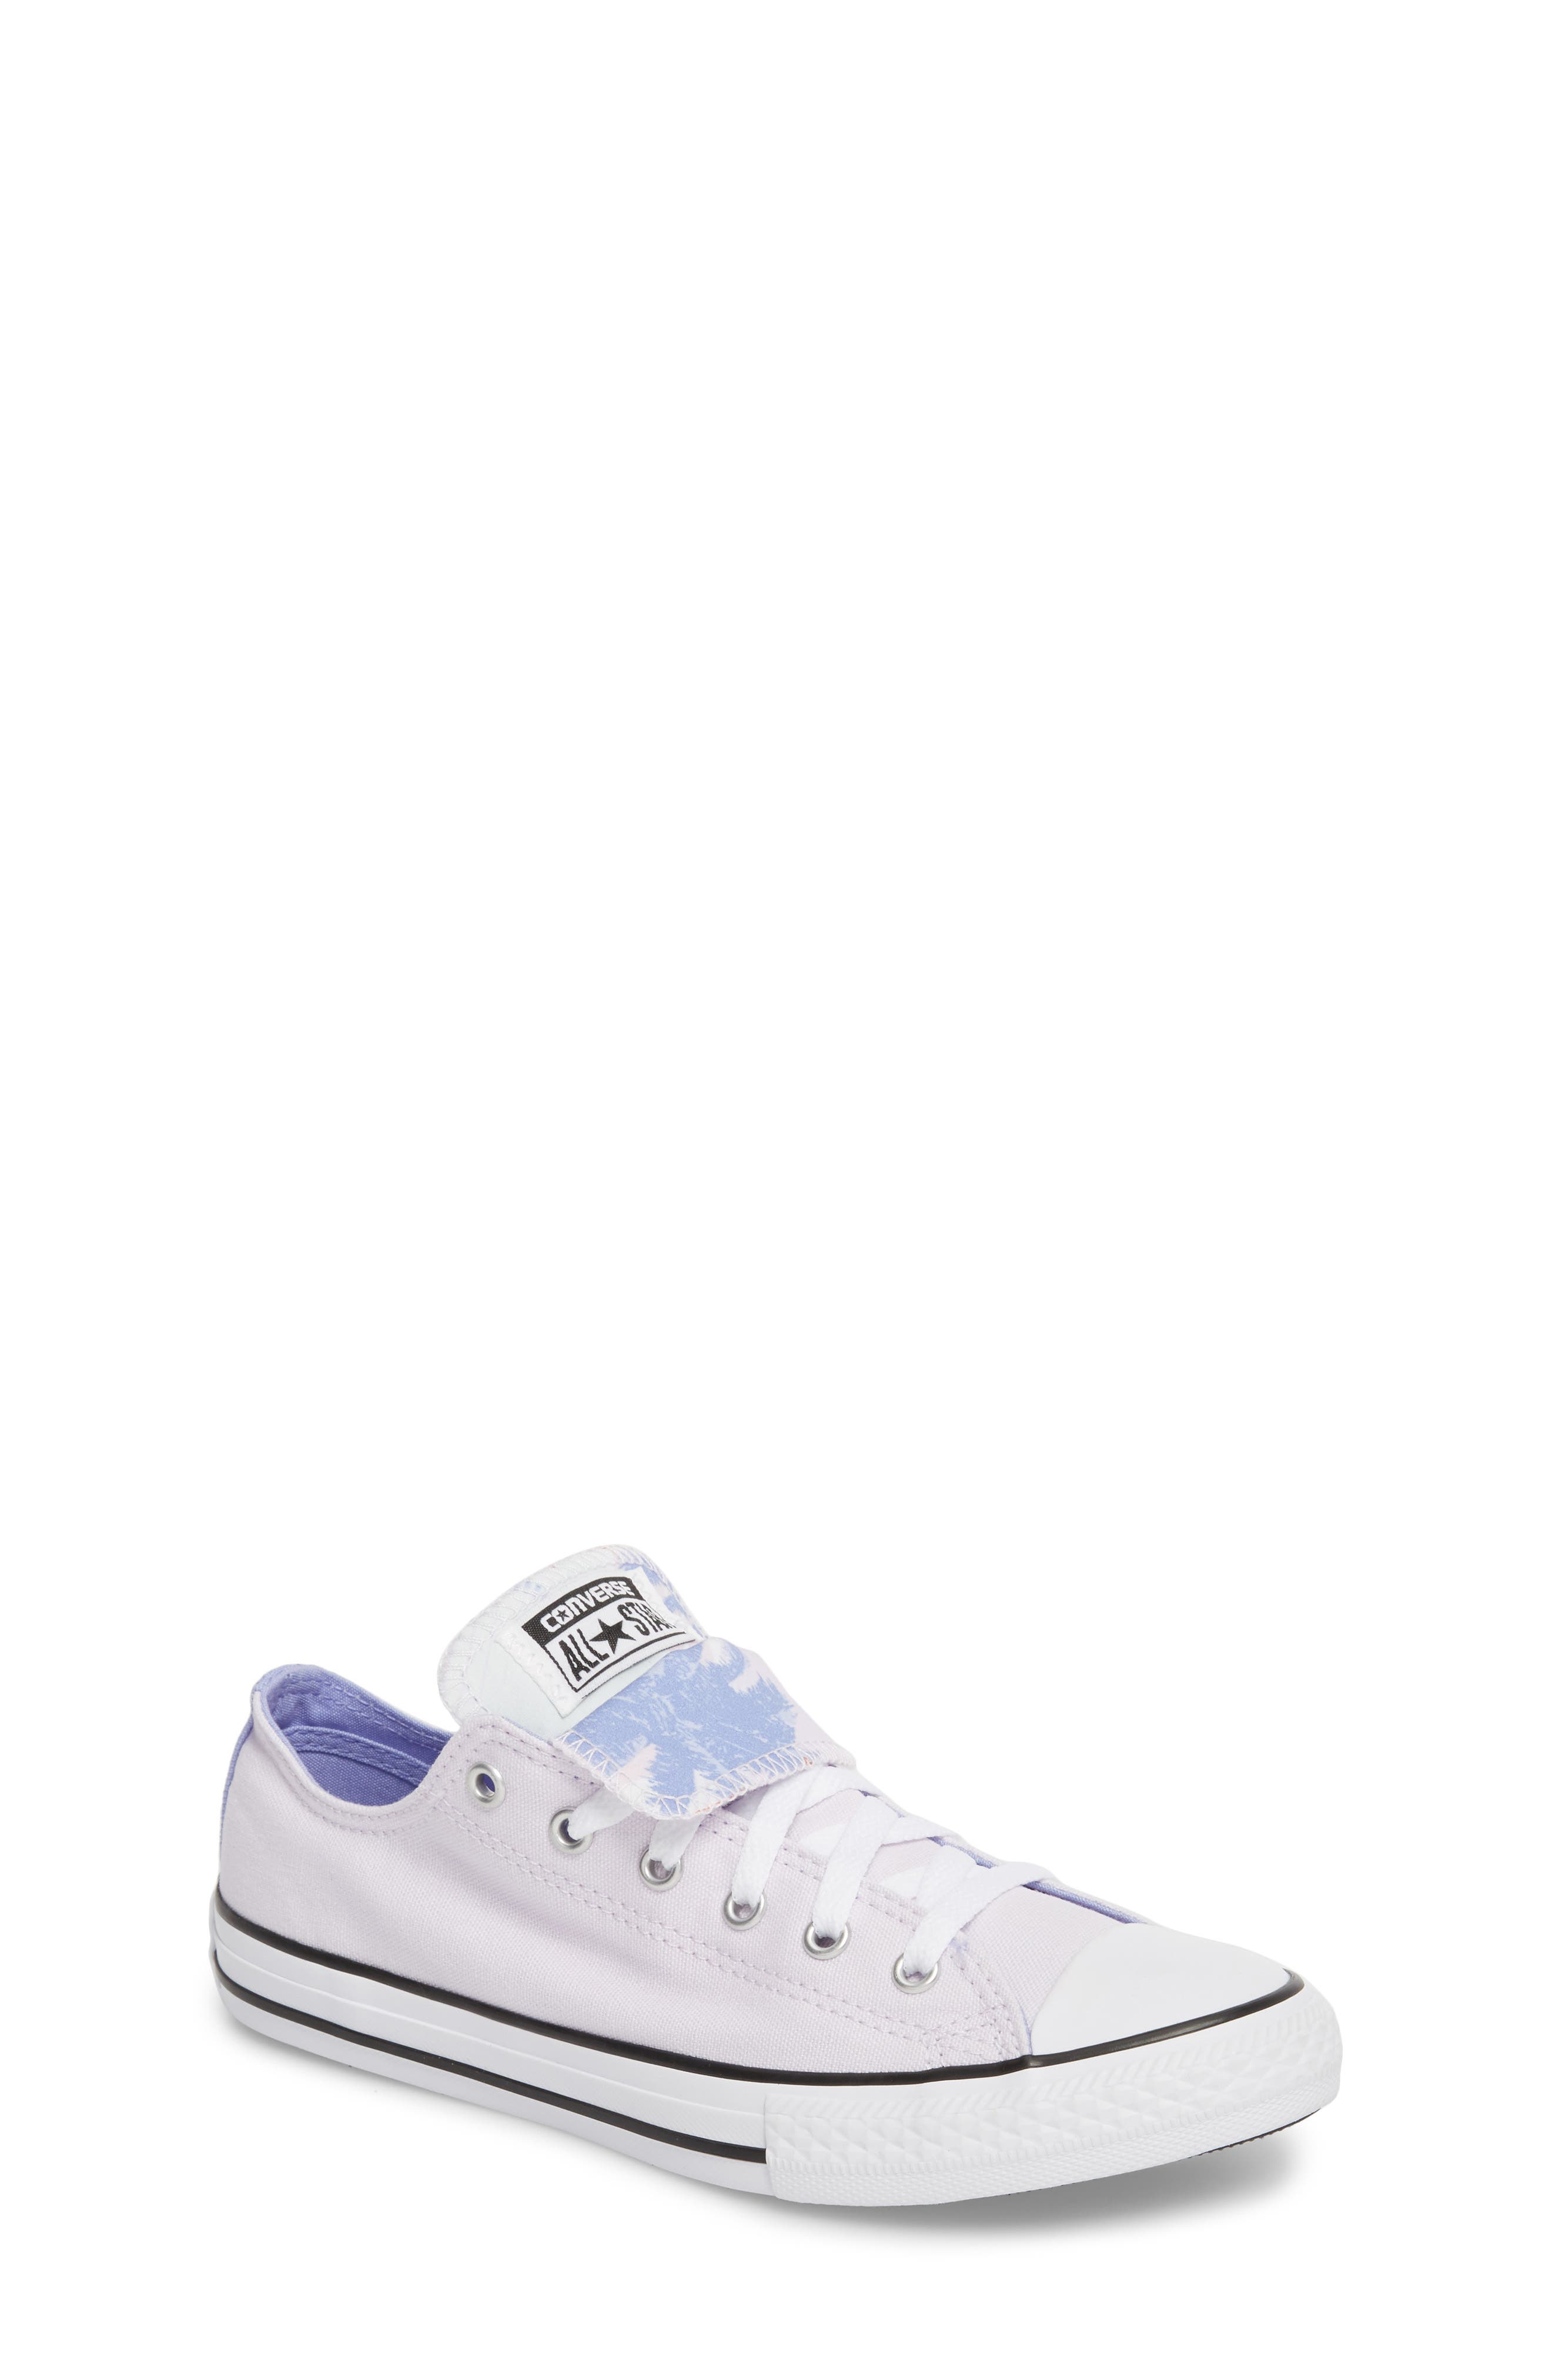 Chuck Taylor<sup>®</sup> All Star<sup>®</sup> Palm Tree Double Tongue Low Top Sneaker,                             Main thumbnail 1, color,                             551